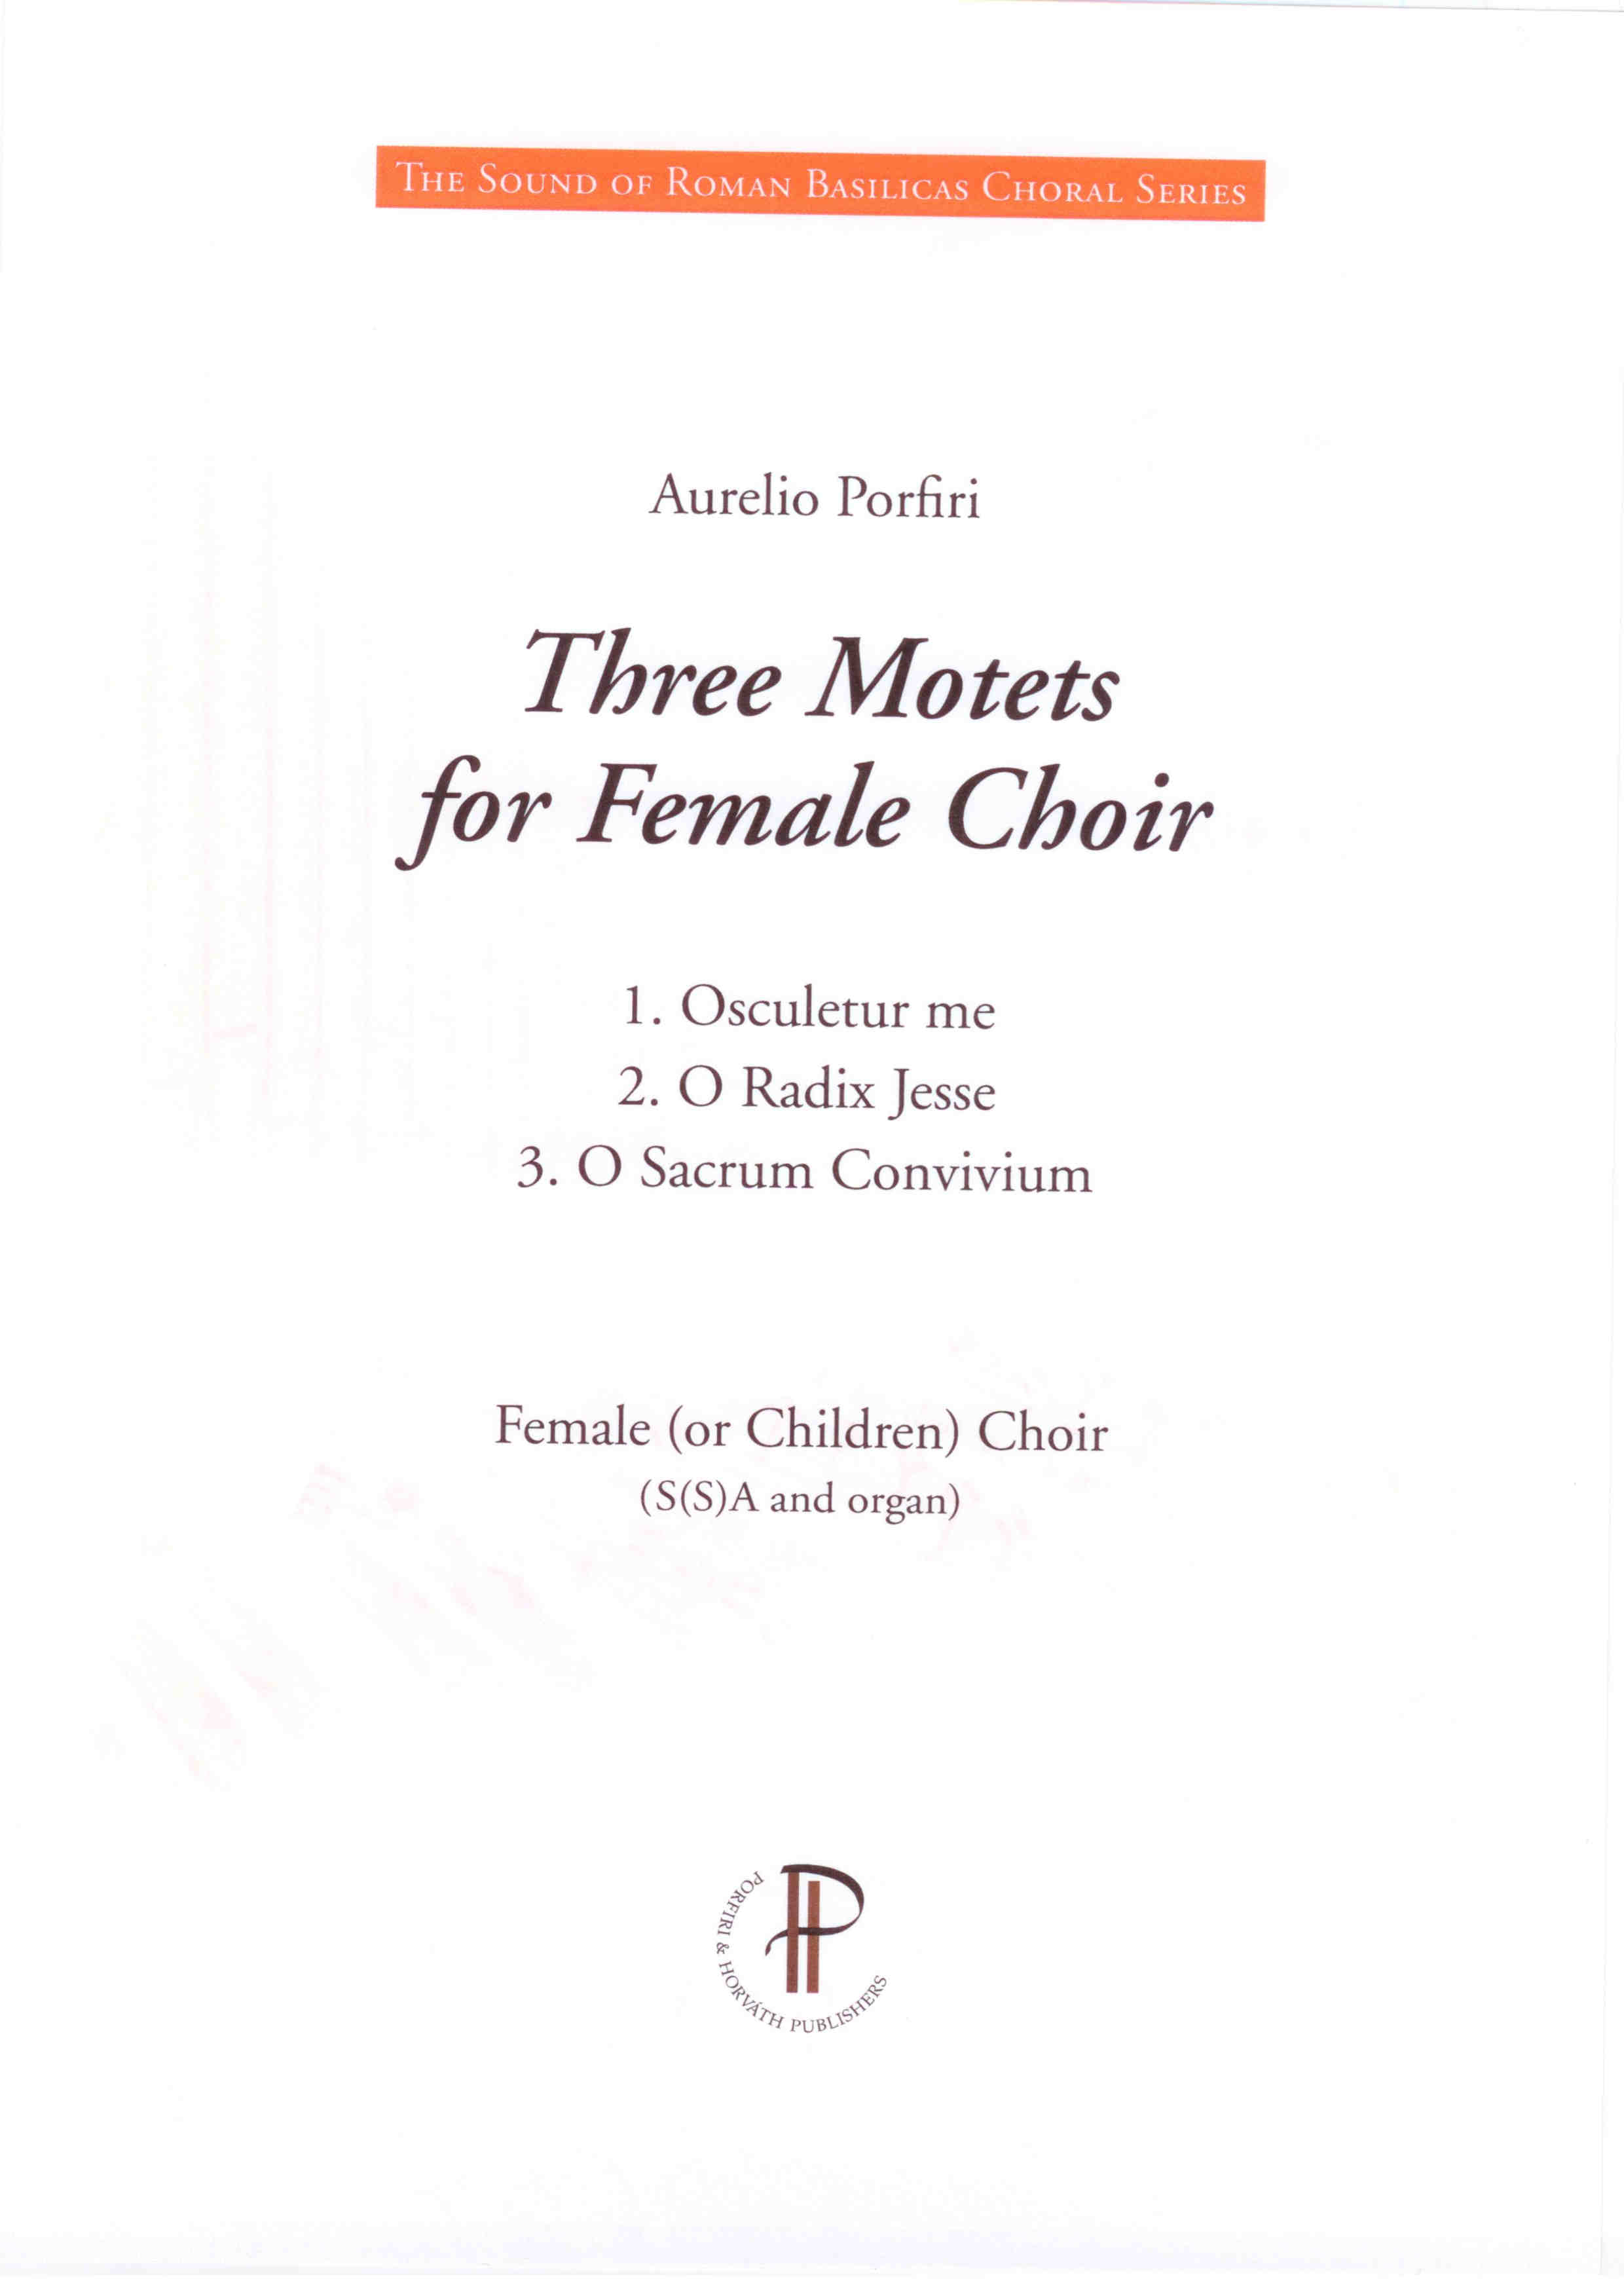 Three Motets for Female Choir